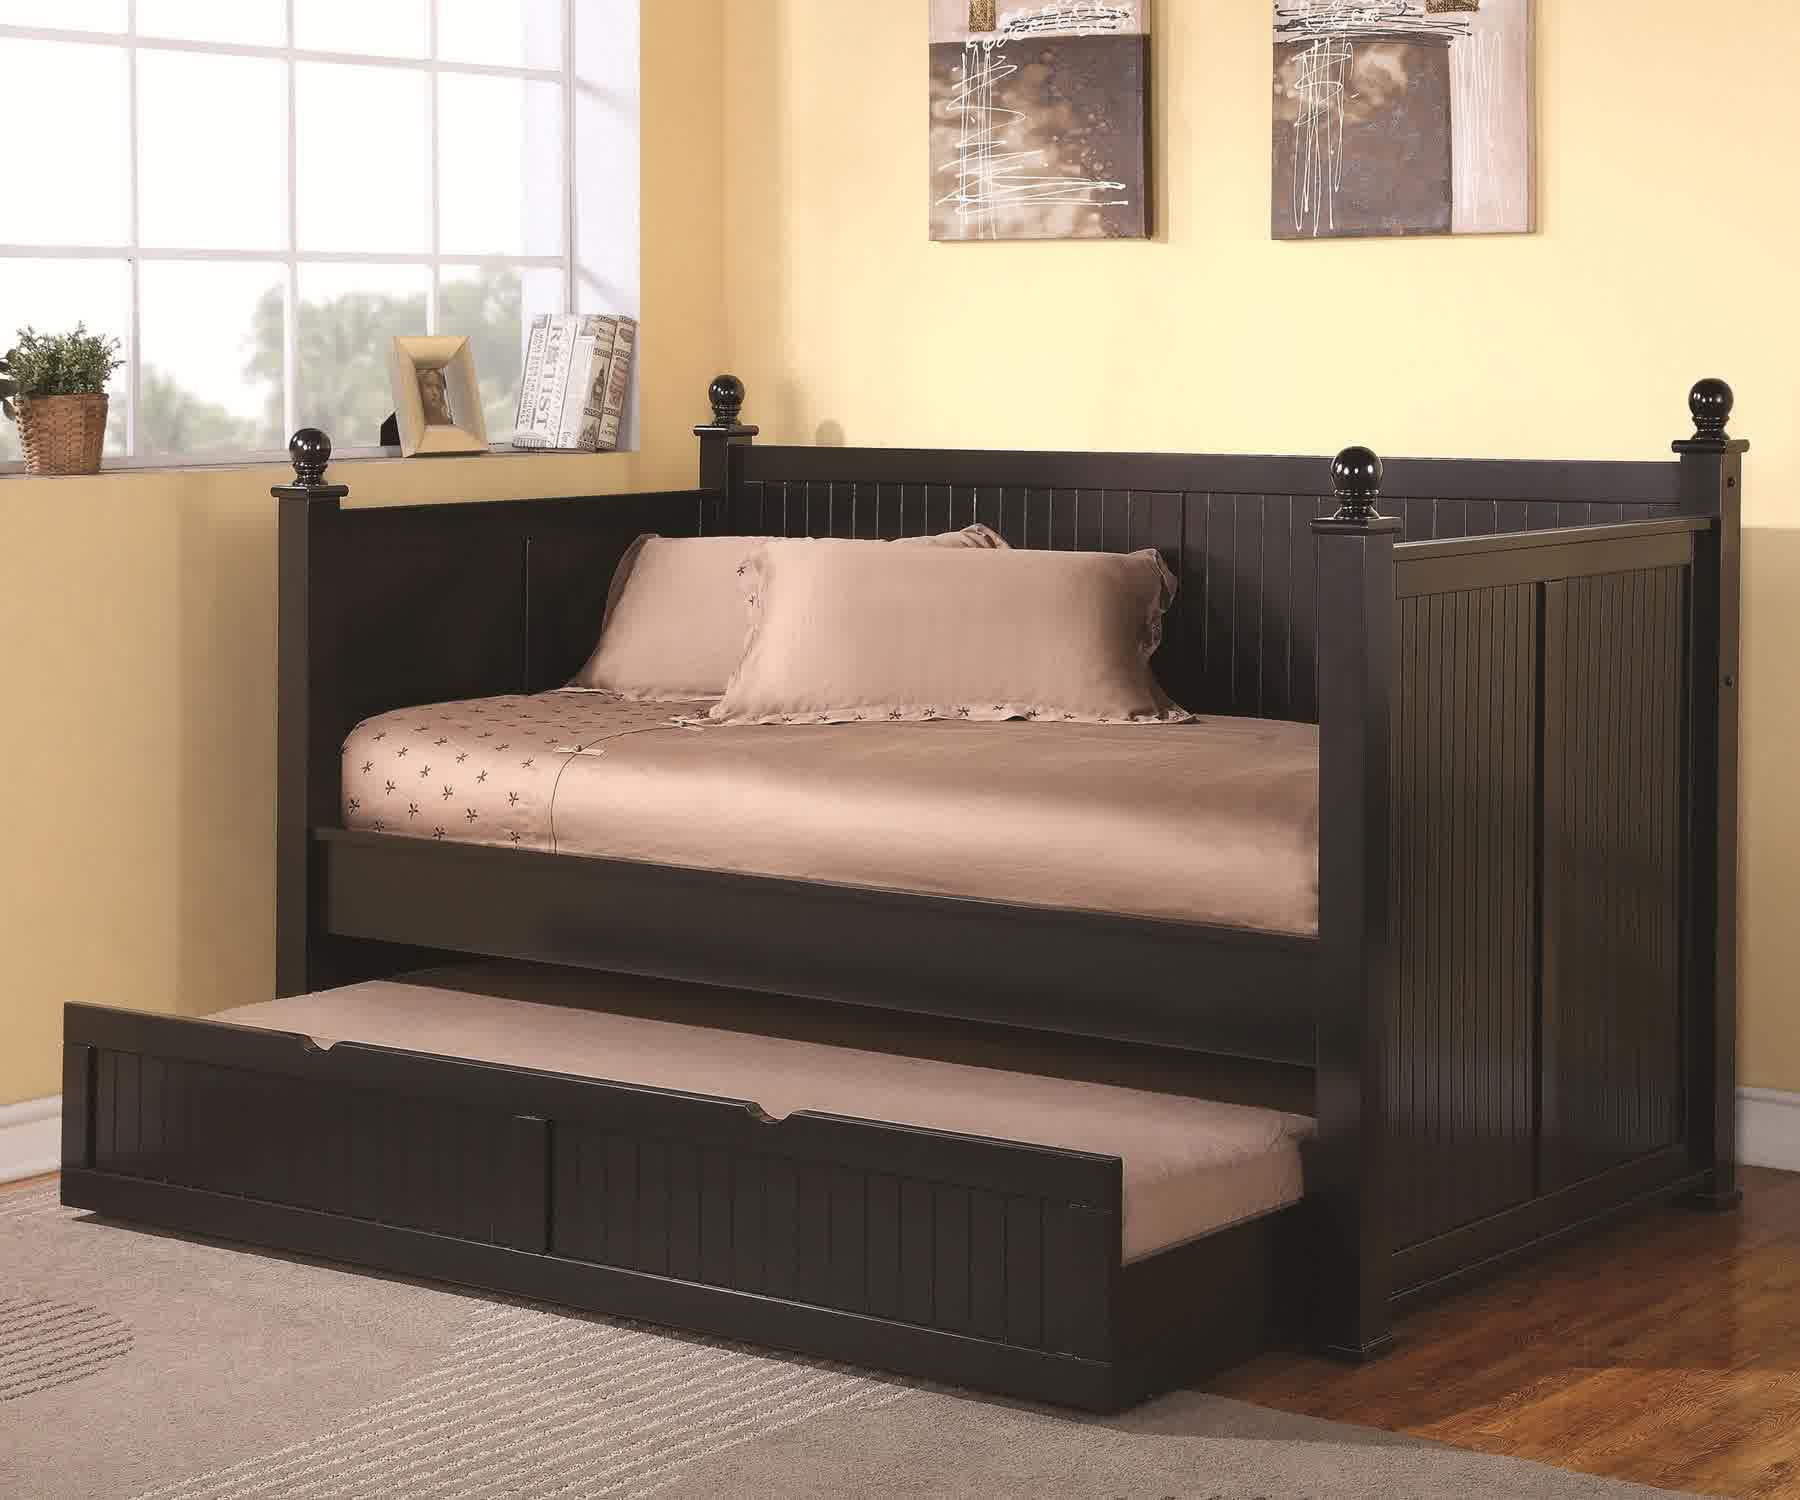 Modern daybed with pop up trundle - Black Painted Wood Daybed Withs Trundle Addition By Ikea For Guest